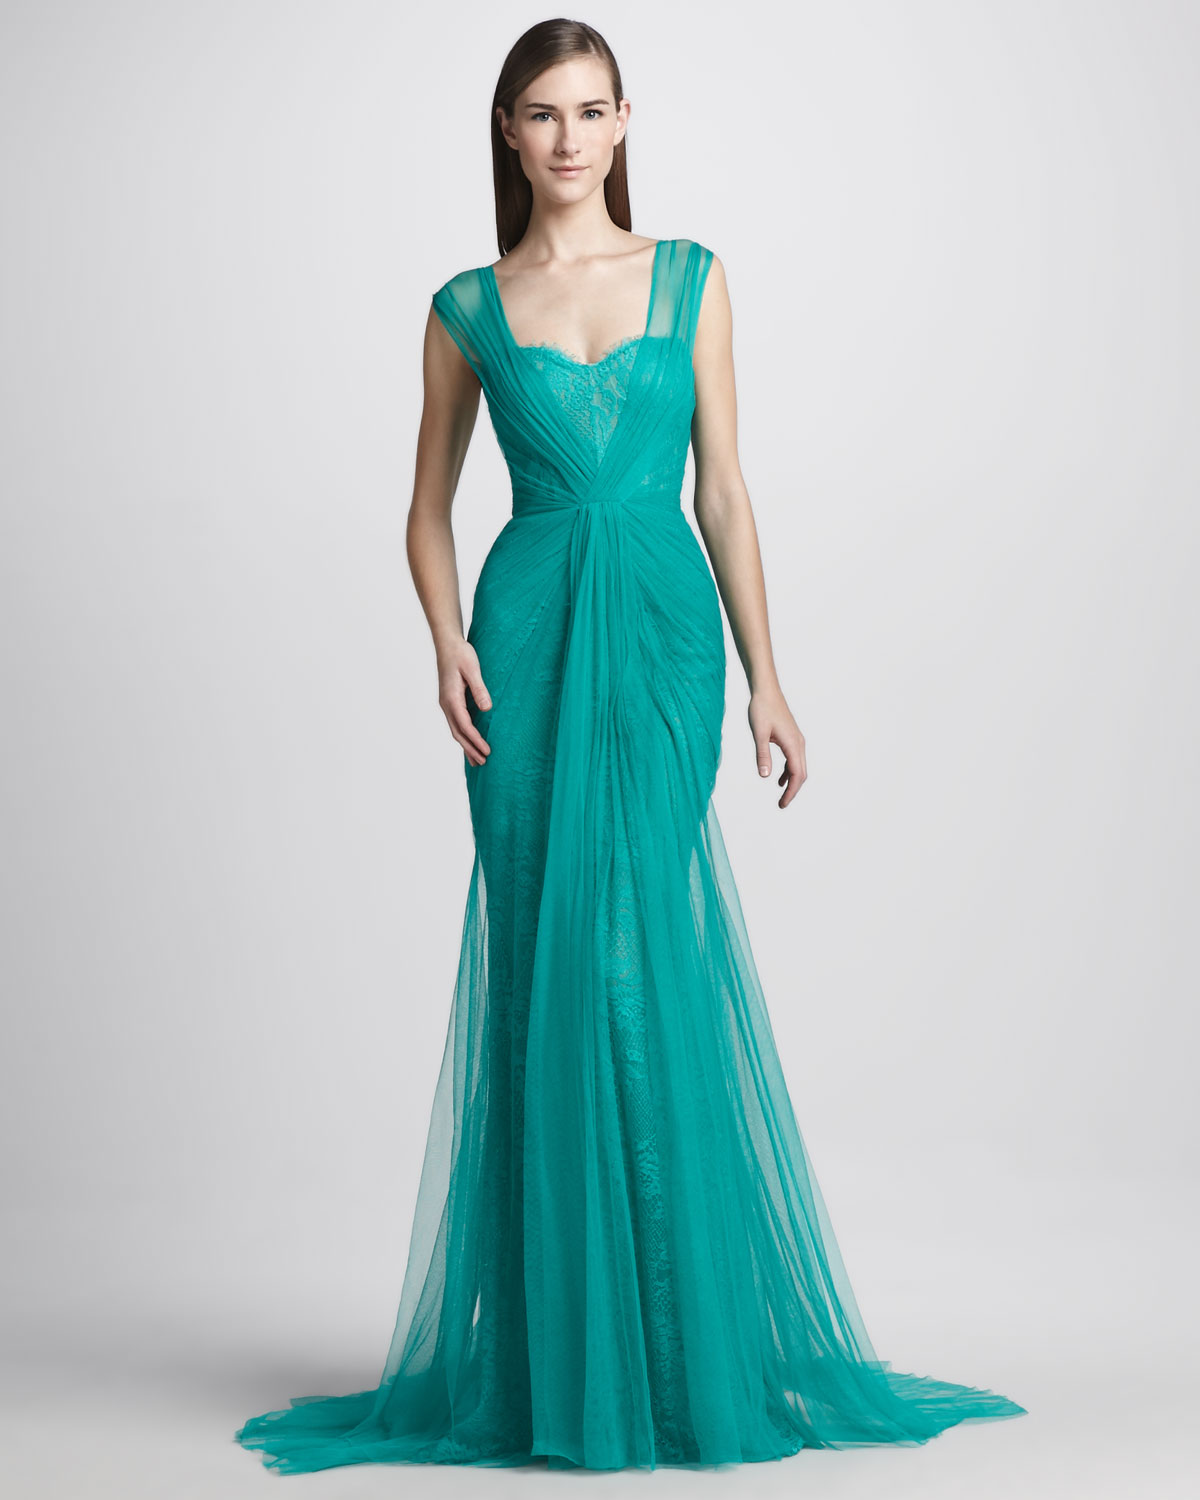 3579dc6bd15 Monique Lhuillier Sheer Lace Overlay Gown in Green - Lyst